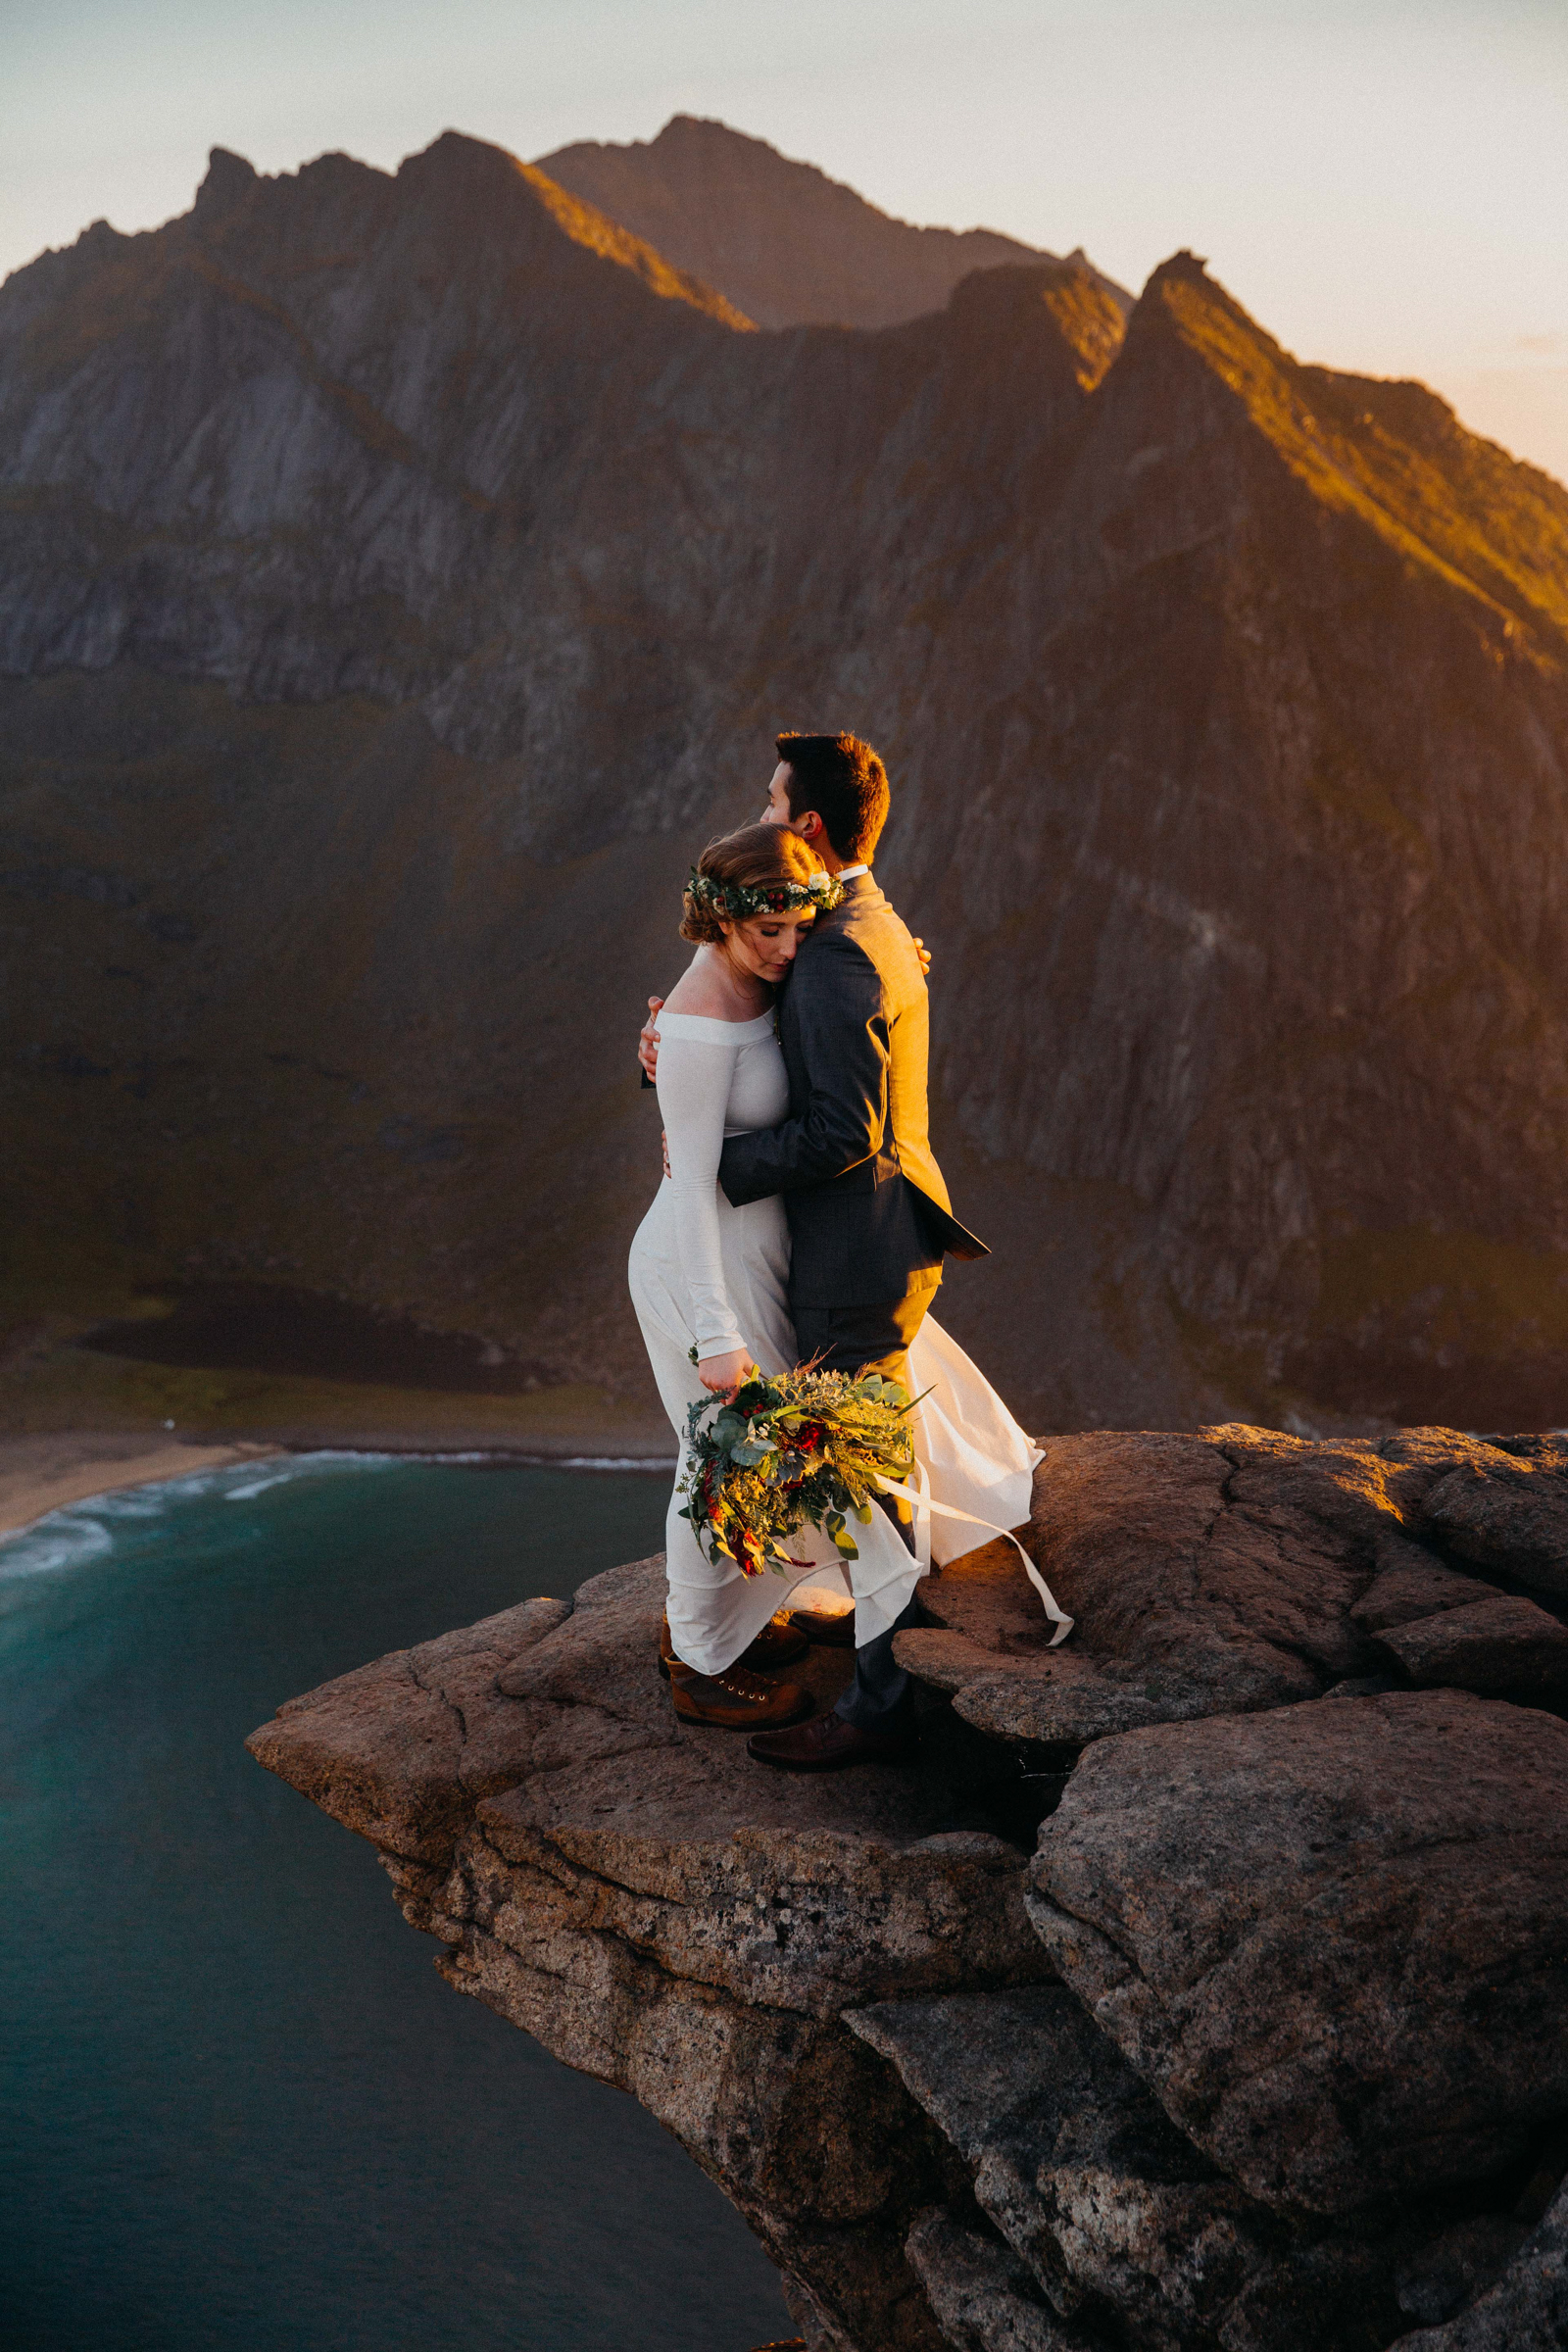 Engagement couple embrace on precipice against mountains and sea - photo by Christin Eide Photography